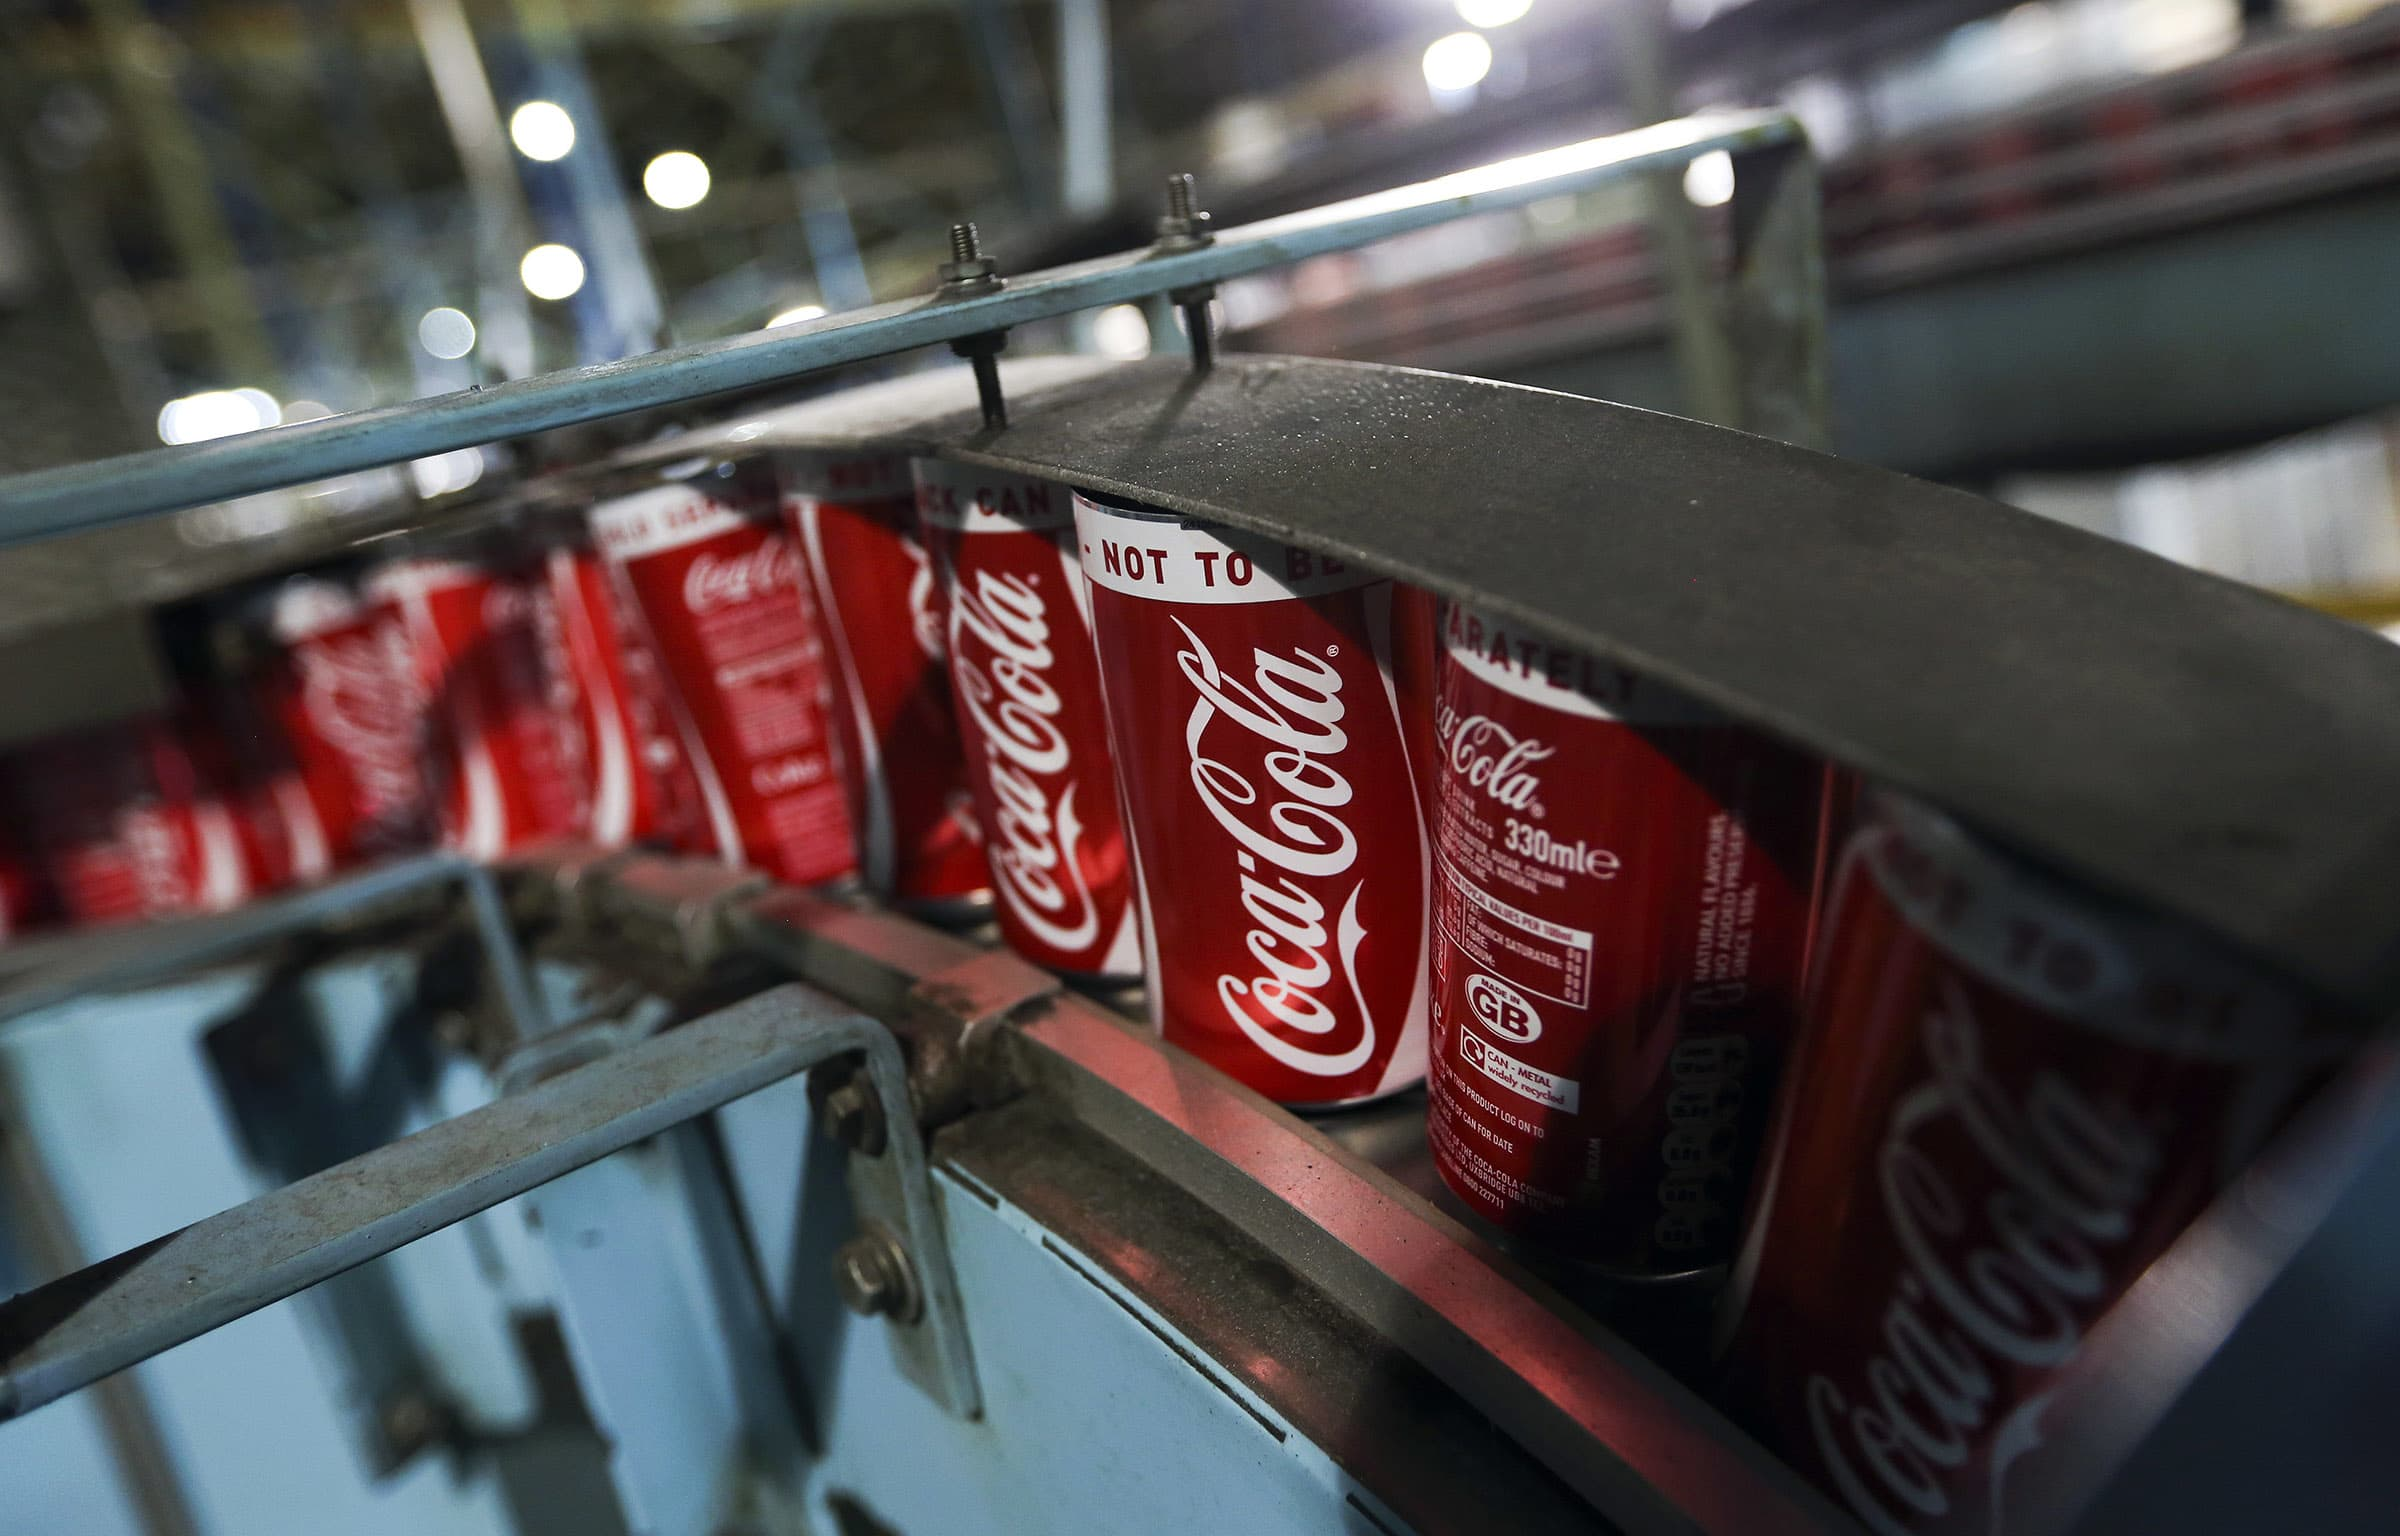 Coca-Cola will cut 2,200 jobs worldwide as part of restructuring plan